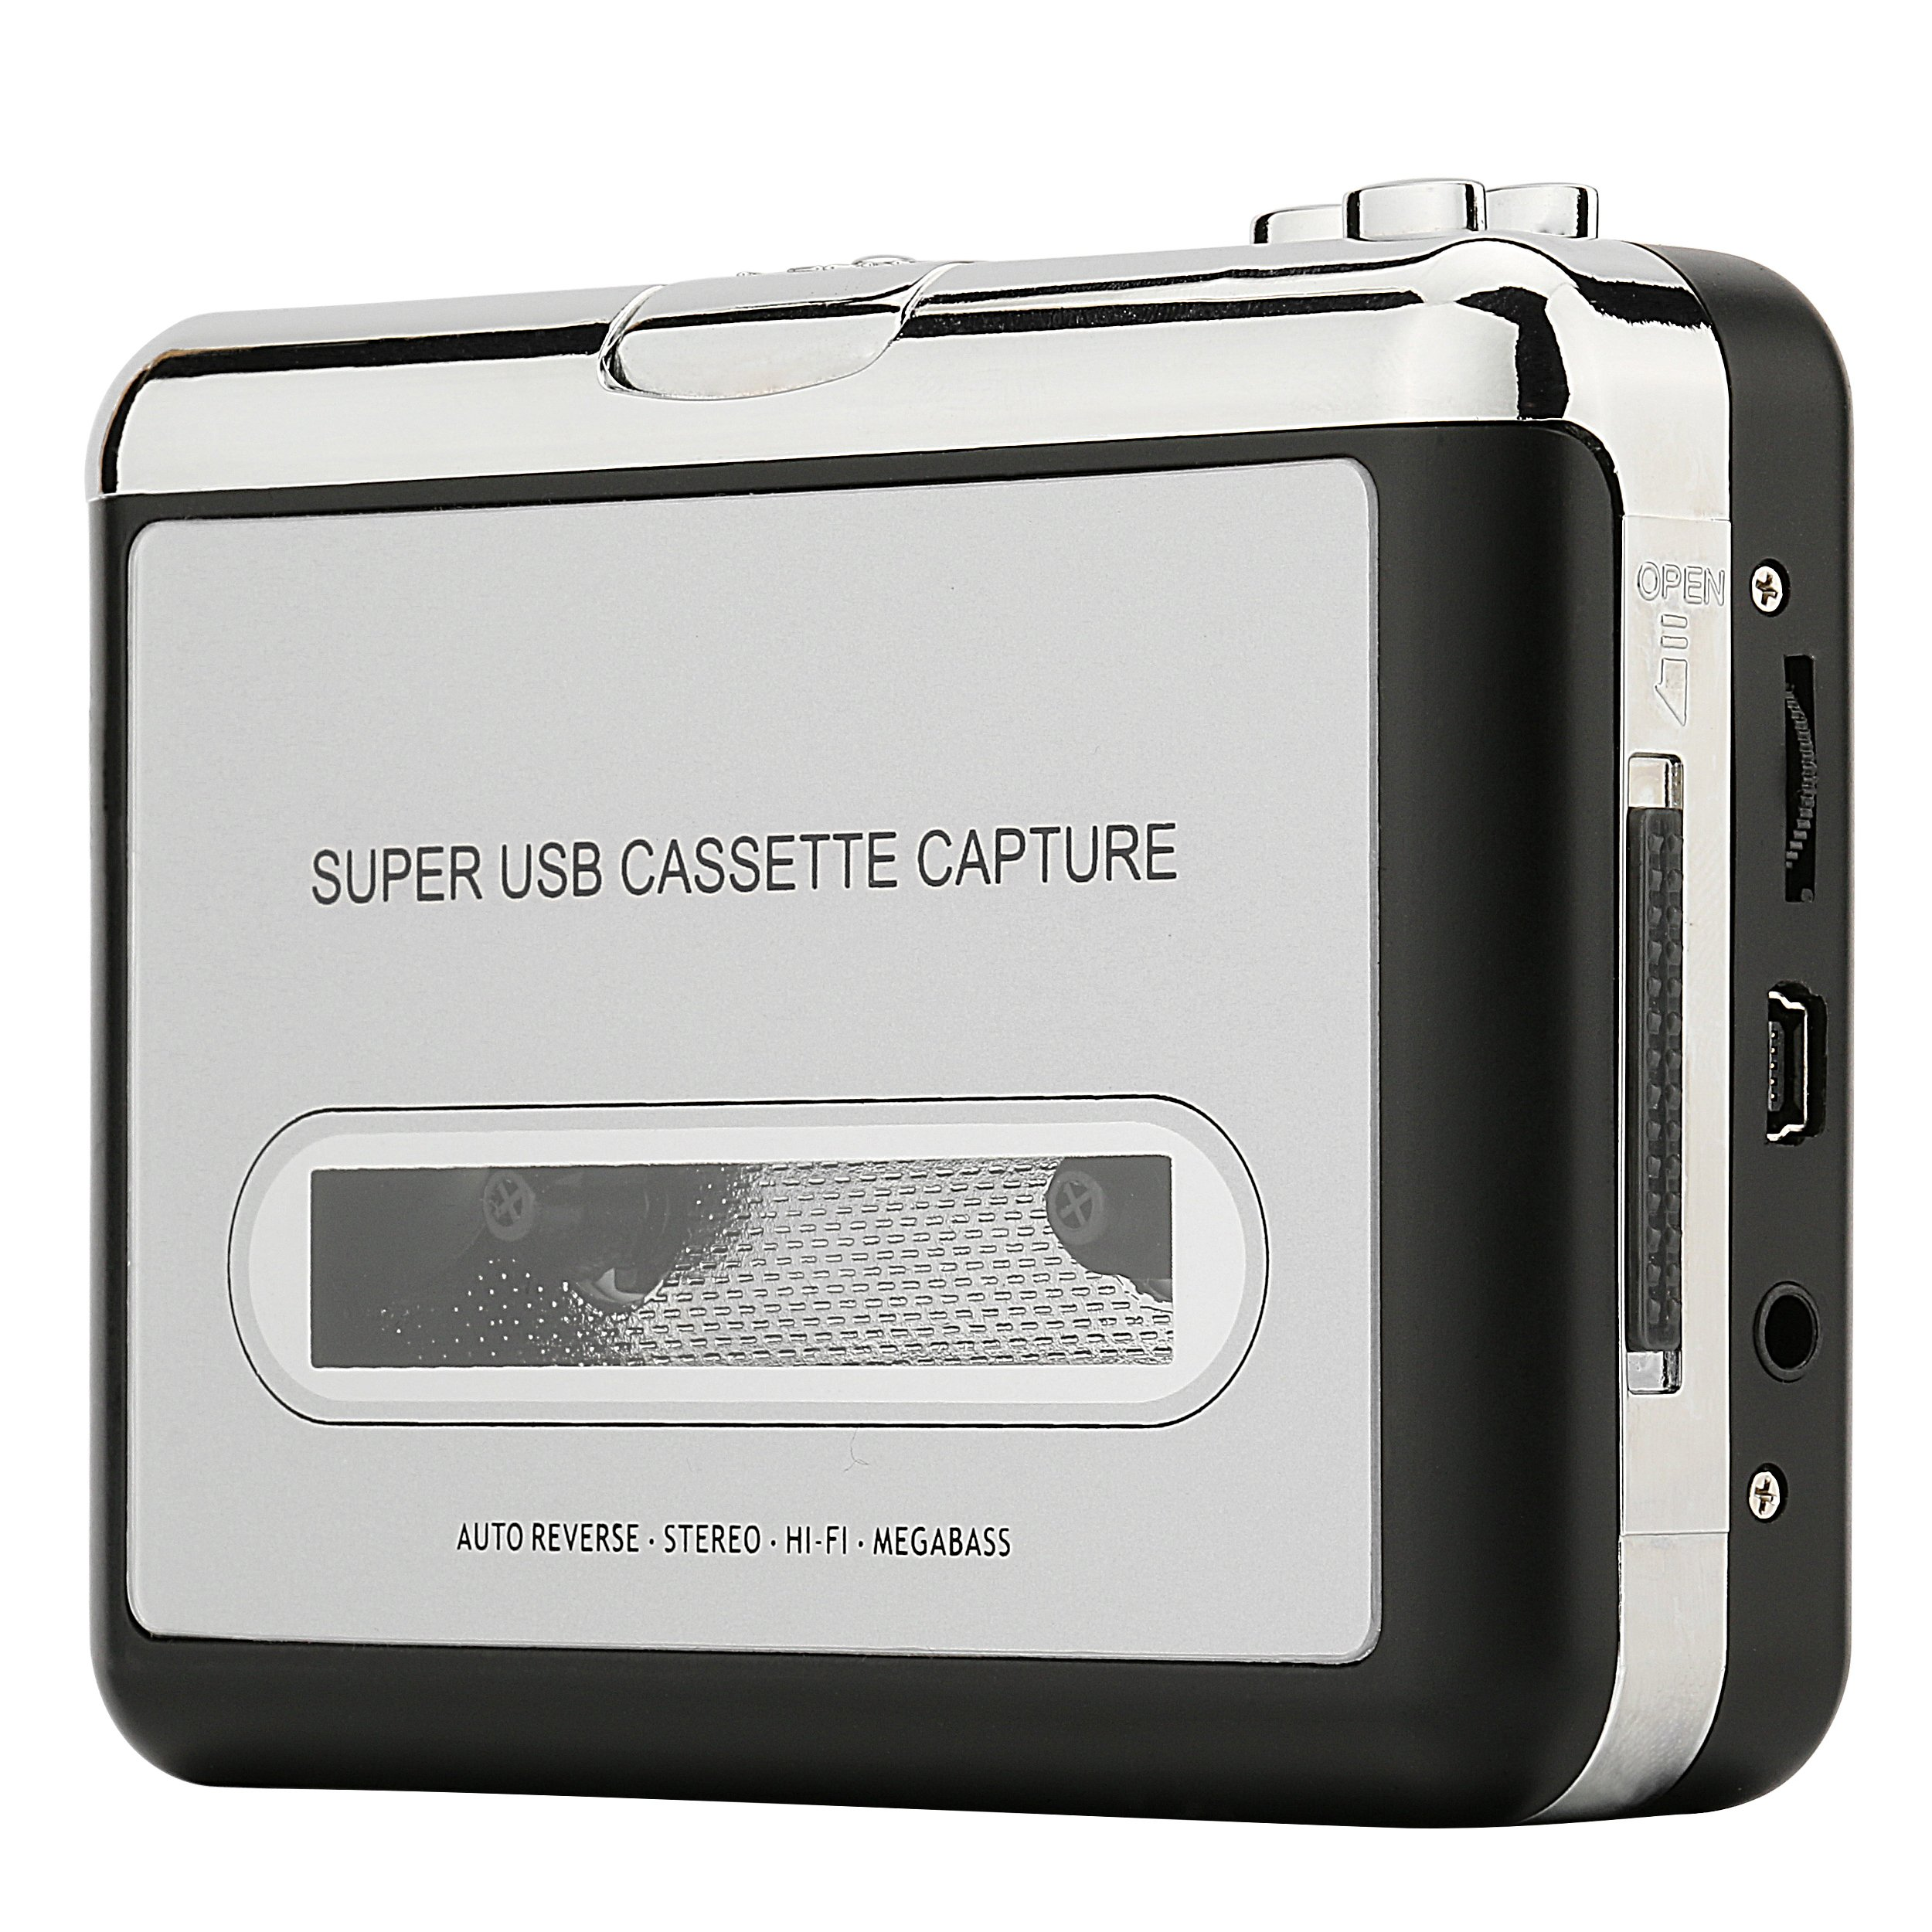 Cassette Player – Portable Tape Player Captures MP3 Audio Music via USB – Compatible with Laptops and Personal Computers – Convert Walkman Tape Cassettes to iPod Format